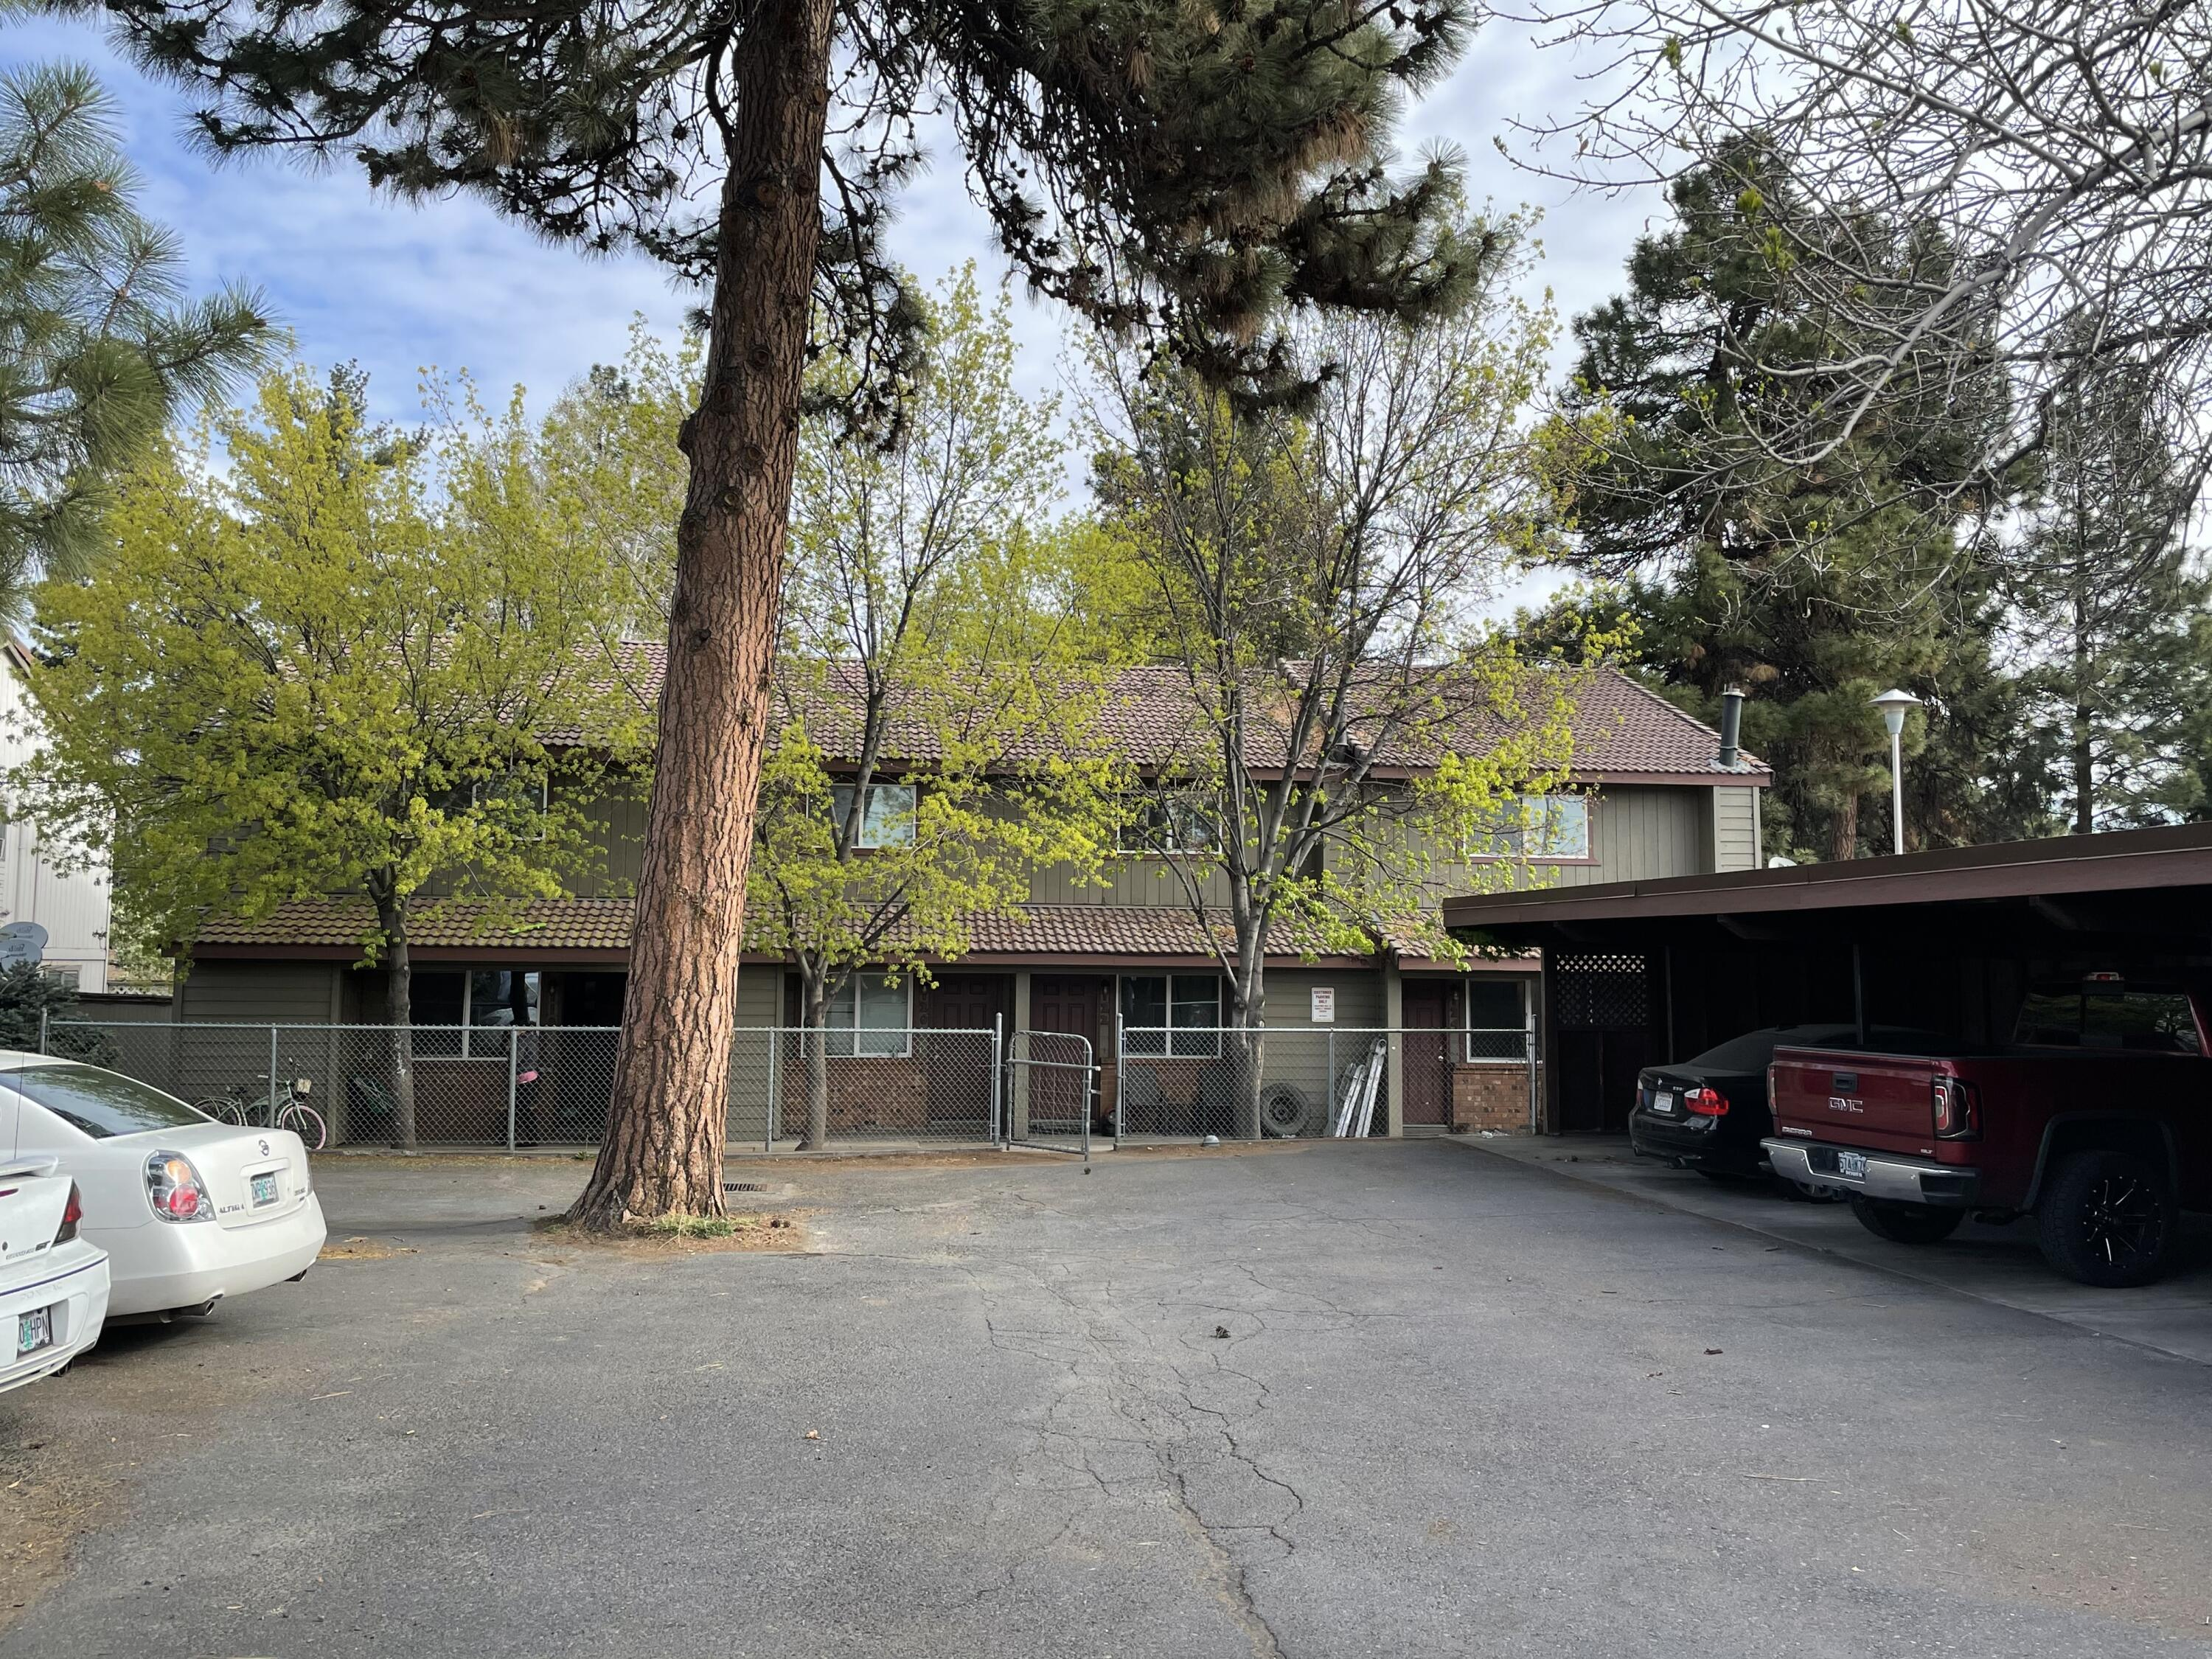 Bend 4-Plex. Two large 3 bedroom/1.5 bath units and two large 2 bedroom/1.5 bath units. Centrally located in Bend with excellent access to all parts of town. Close to the Old Mill and shopping areas. Several long term tenants in place. Rent upsides on all units. Tenants reimburse landlord for W/S/G. Recent upgrades to property over past two years. One unit currently vacant for viewing.  Undergoing some renovation.  Will be marketed at $1,500 per month.